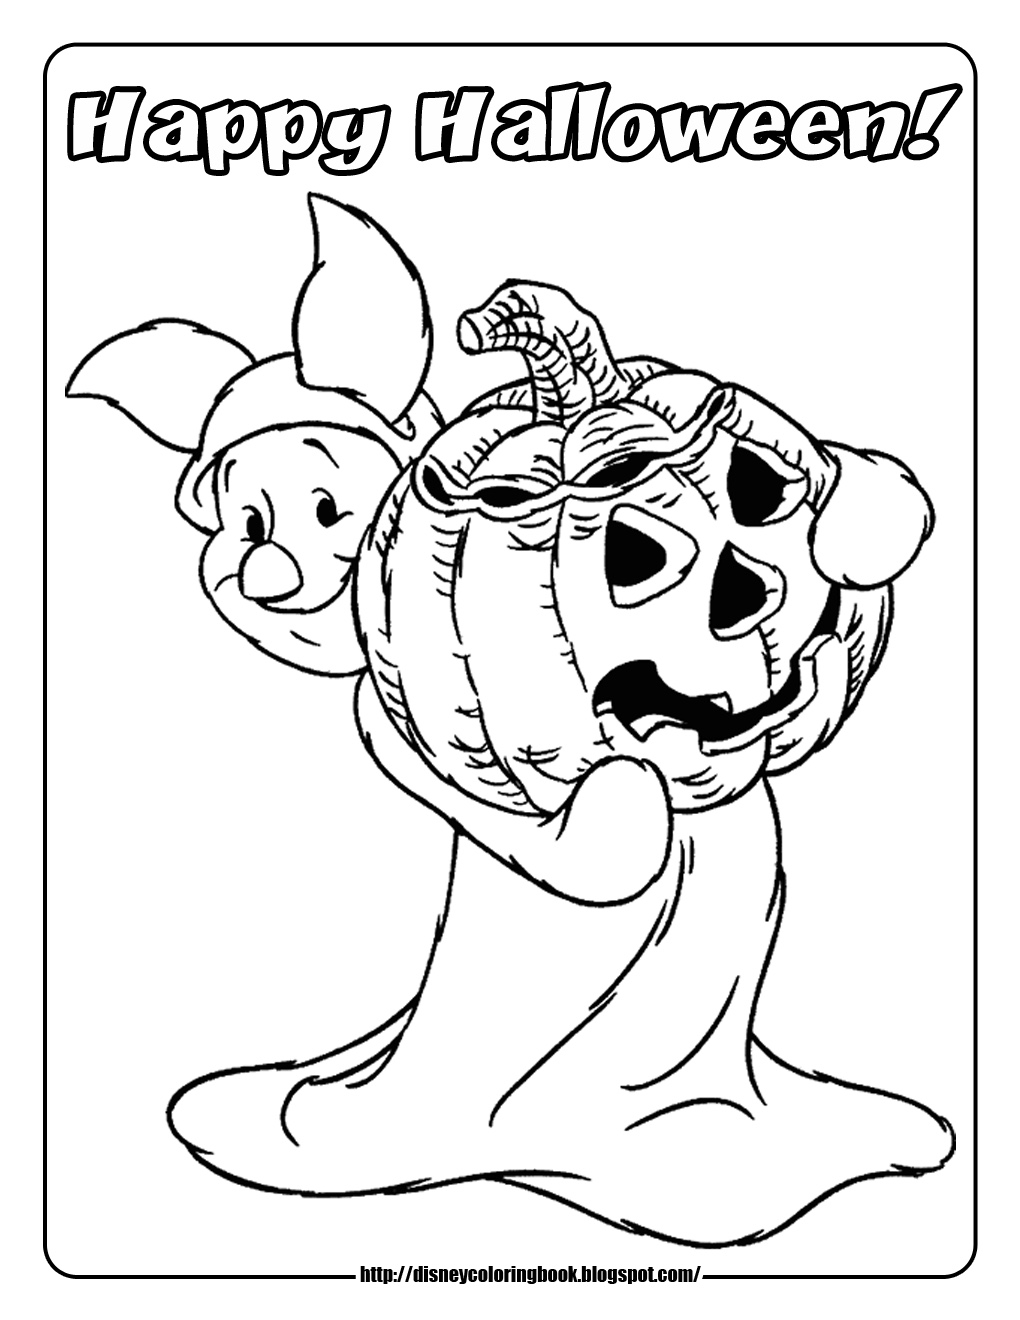 Pooh and Friends Halloween 1 : Free Disney Halloween ...